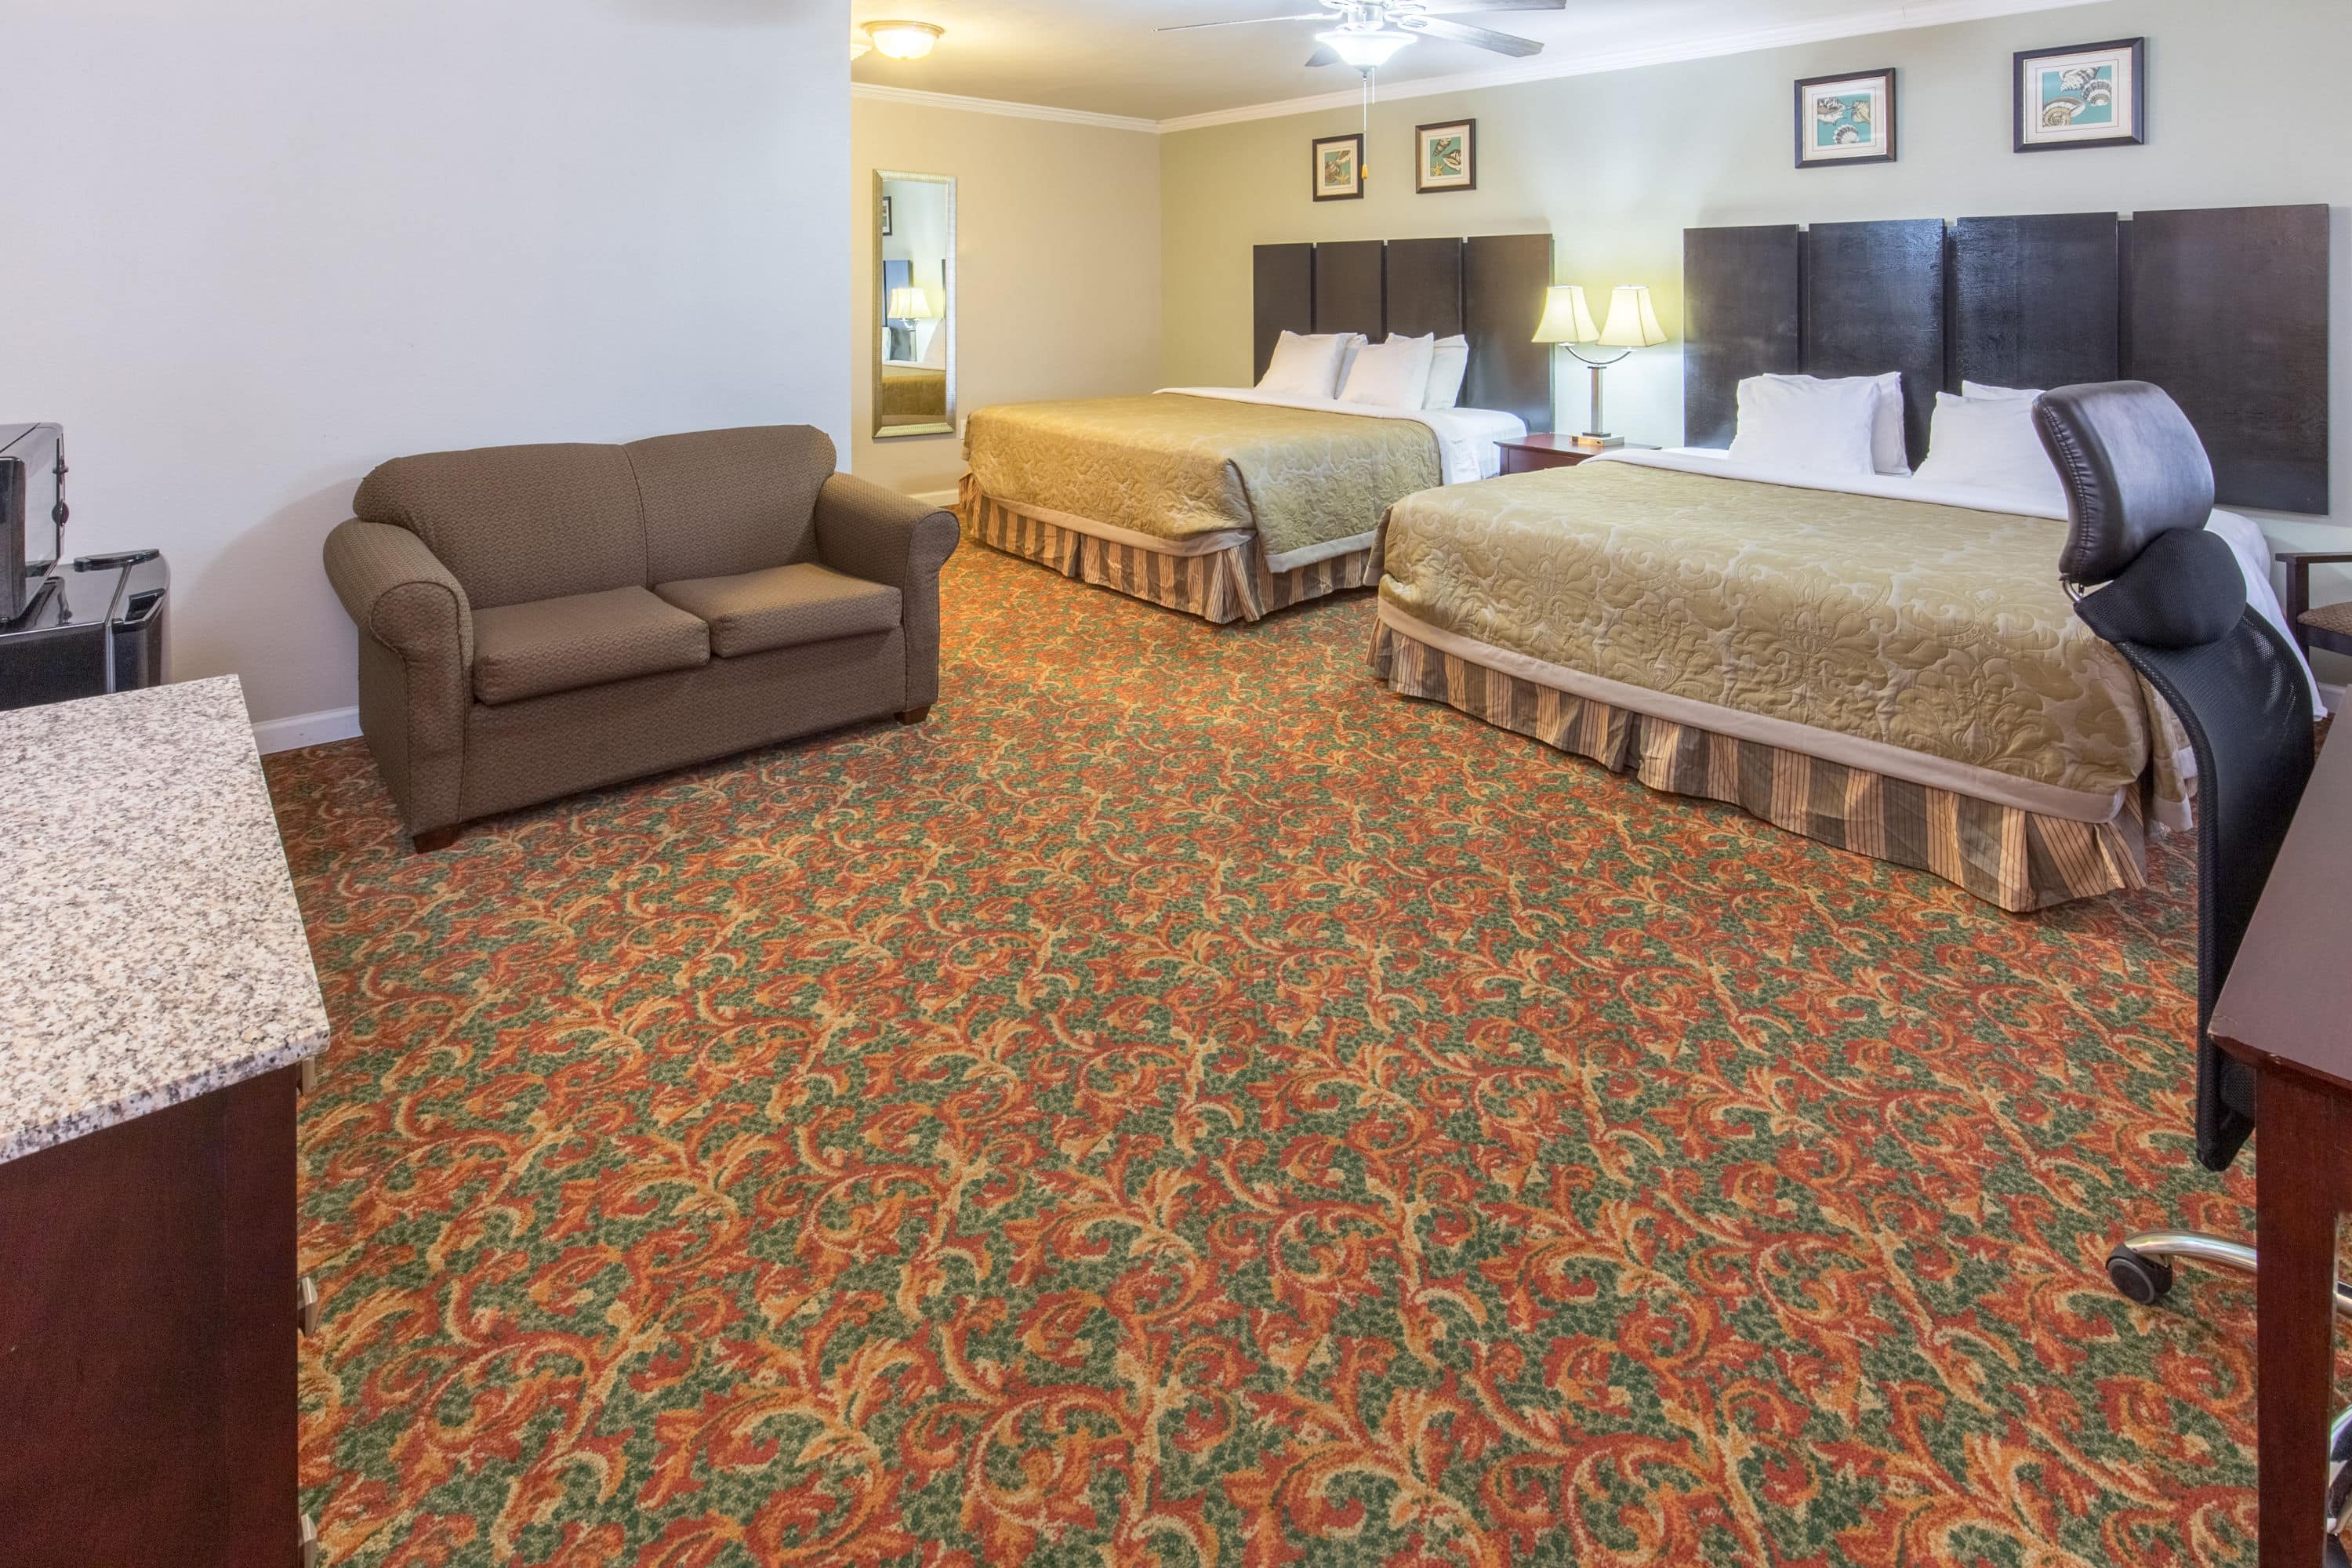 Fabulous Guest Room At The Super Coos Baynorth Bend In Bay Oregon With Hotels Near Or